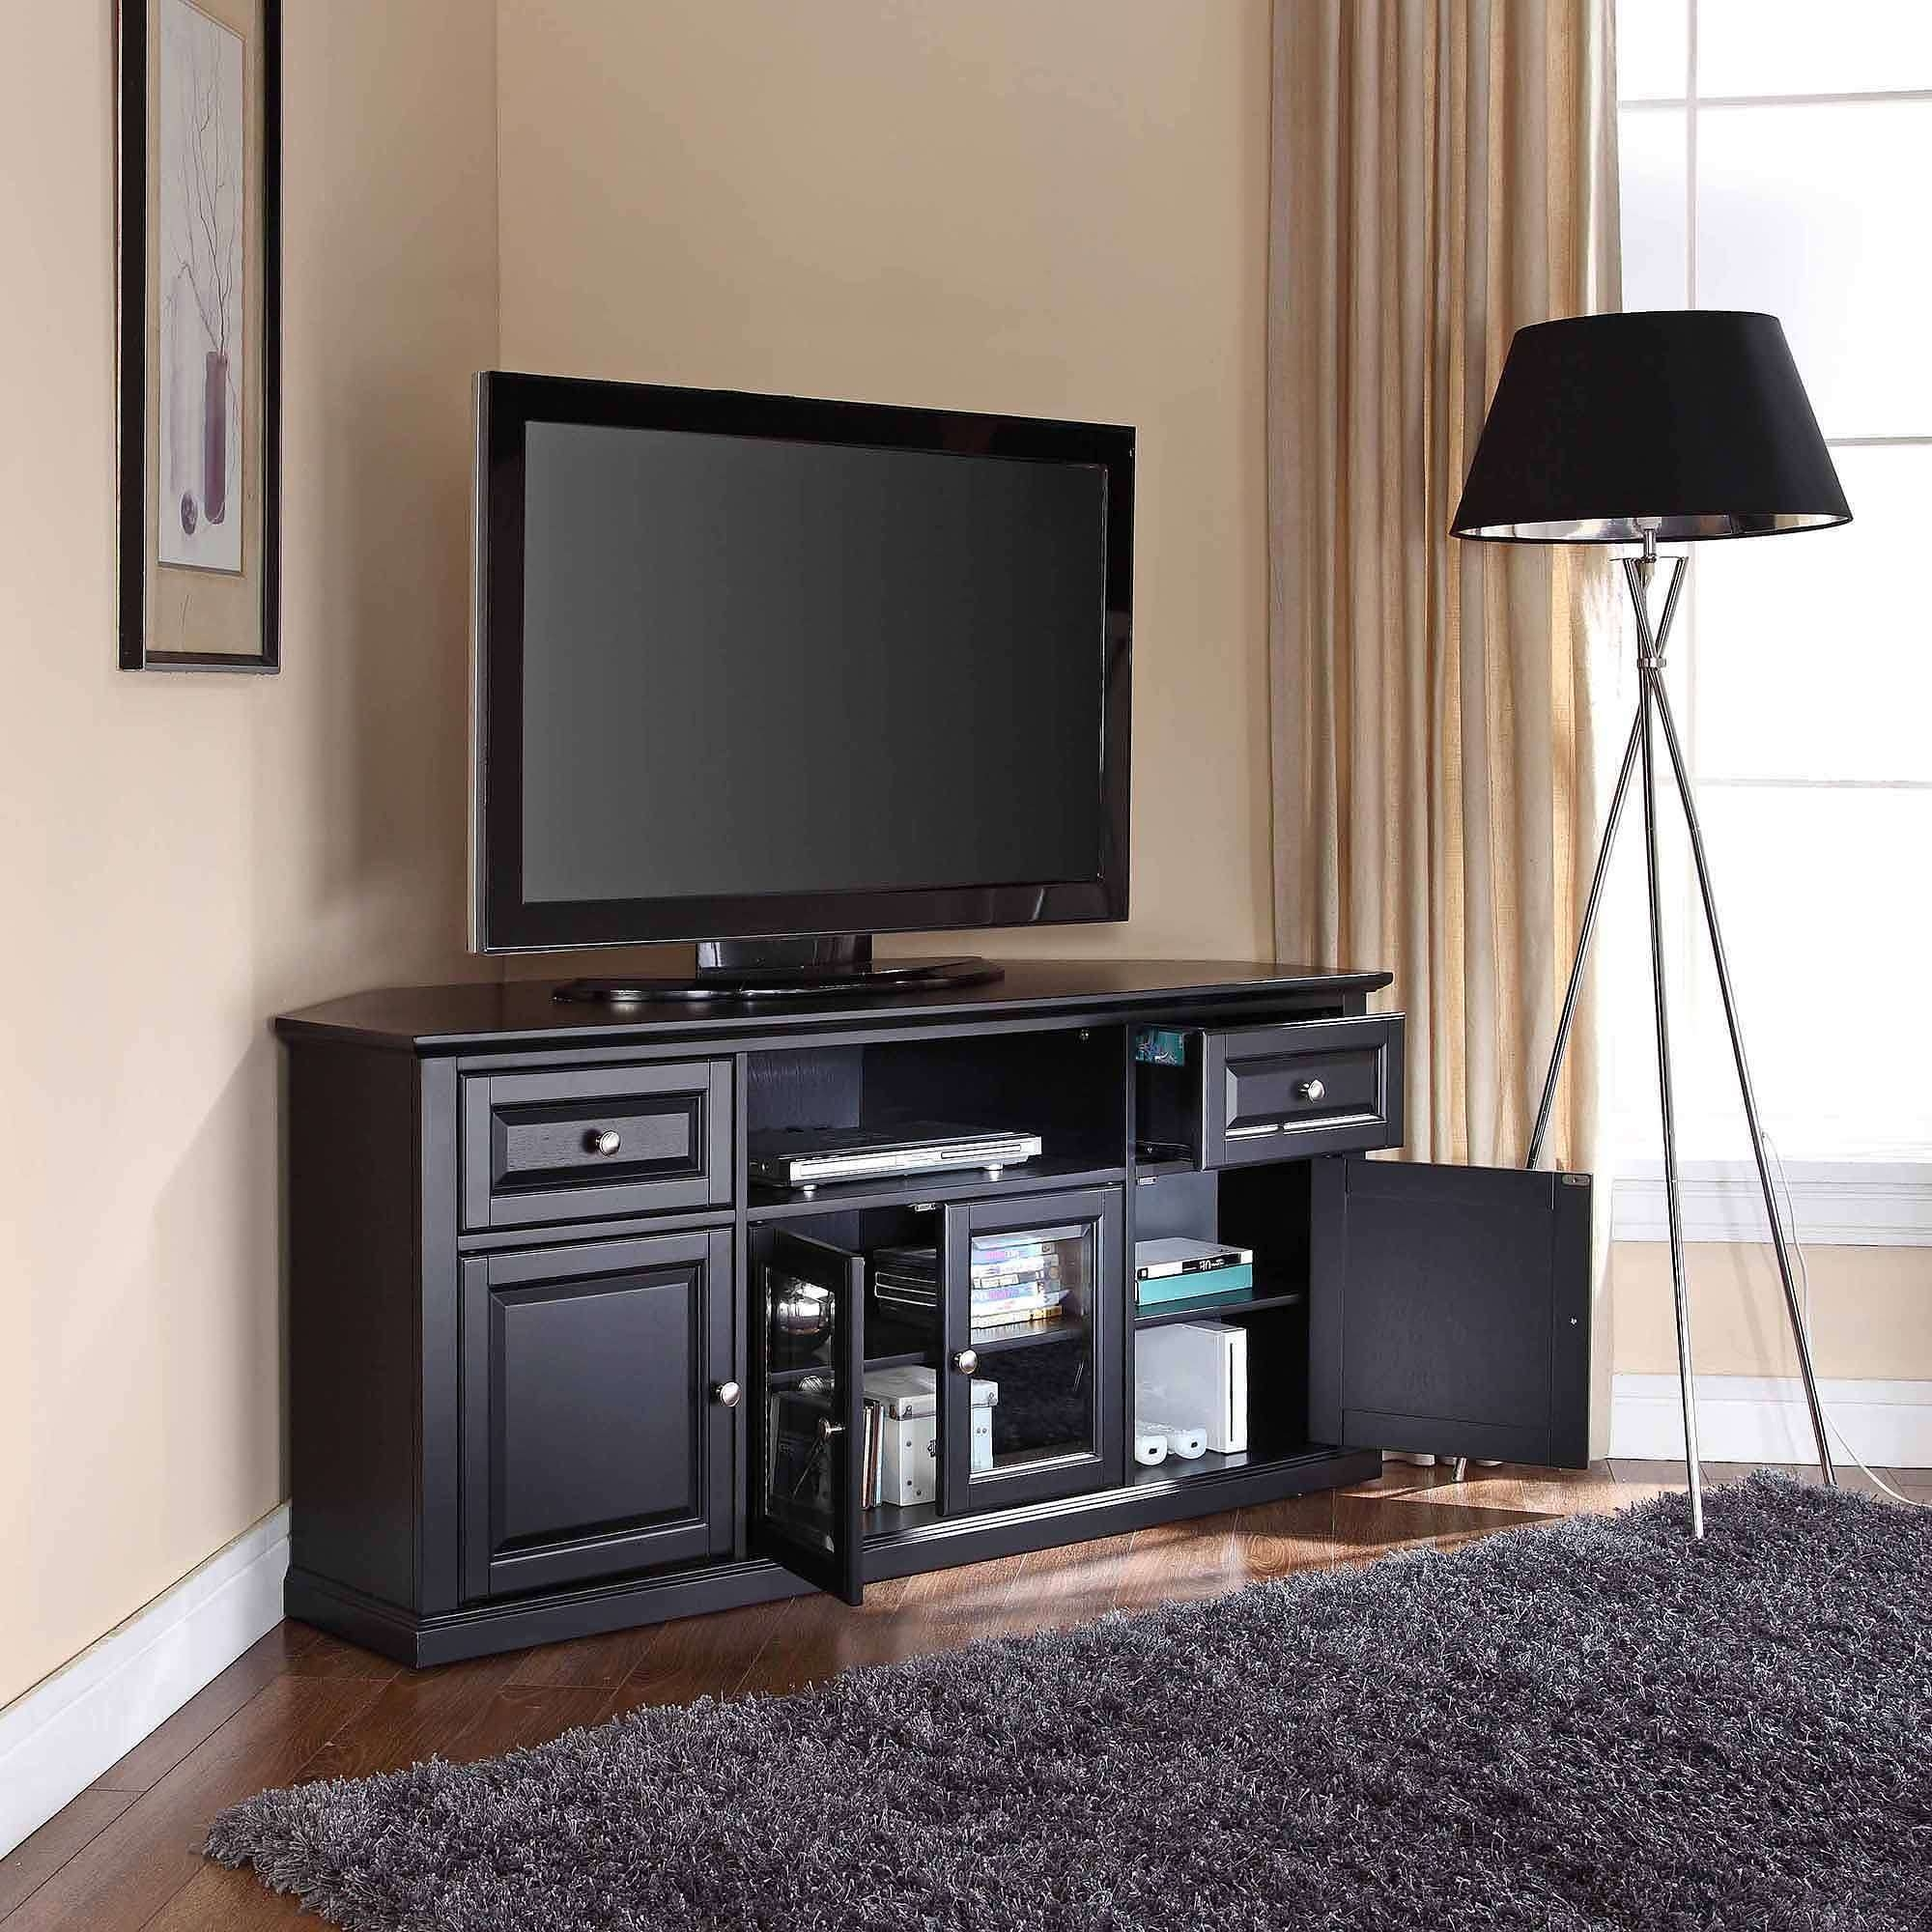 """Crosley Furniture Corner Tv Stand For Tvs Up To 60"""" – Walmart With Regard To Tv Stands Corner Units (View 7 of 15)"""